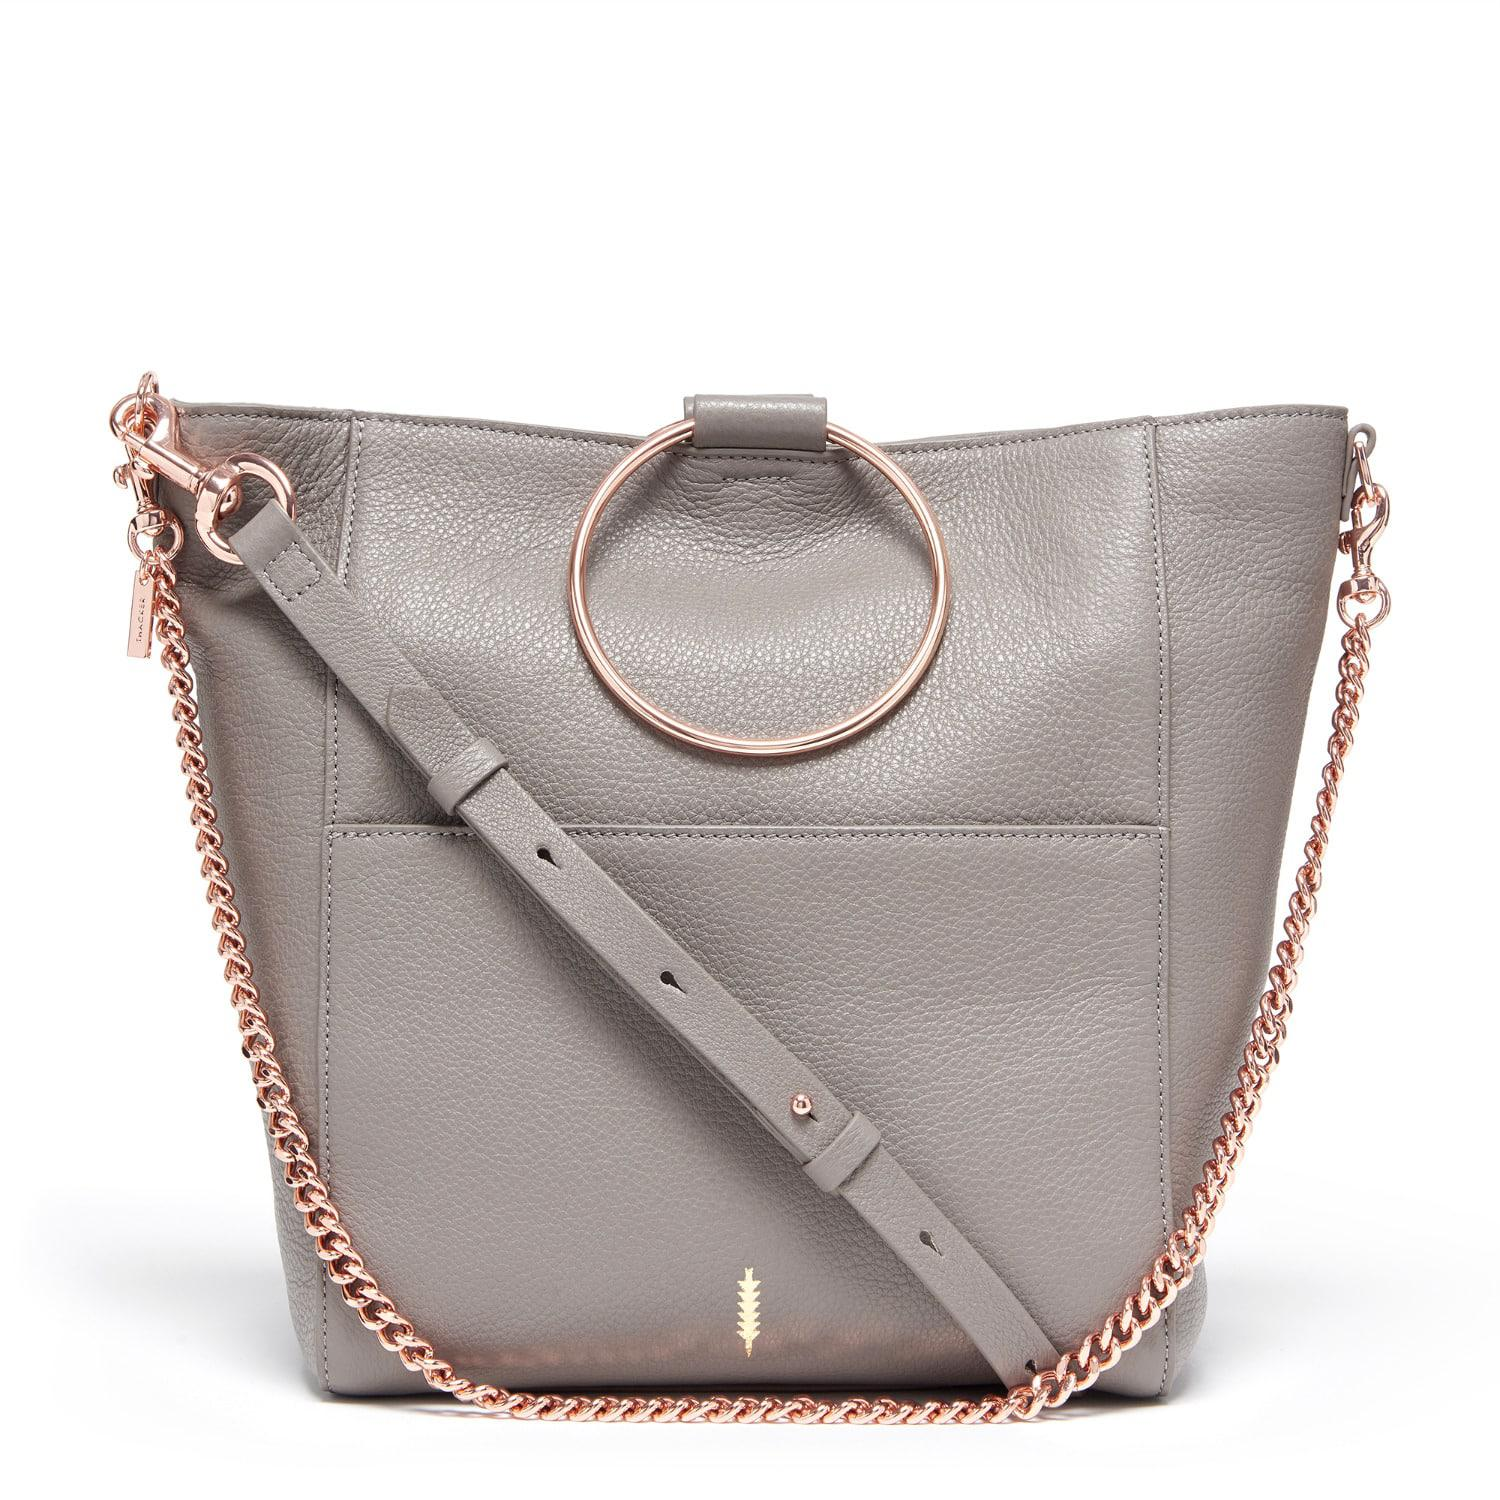 f38ccf29a Thacker NYC Circe Bag Fog in Gray - Lyst